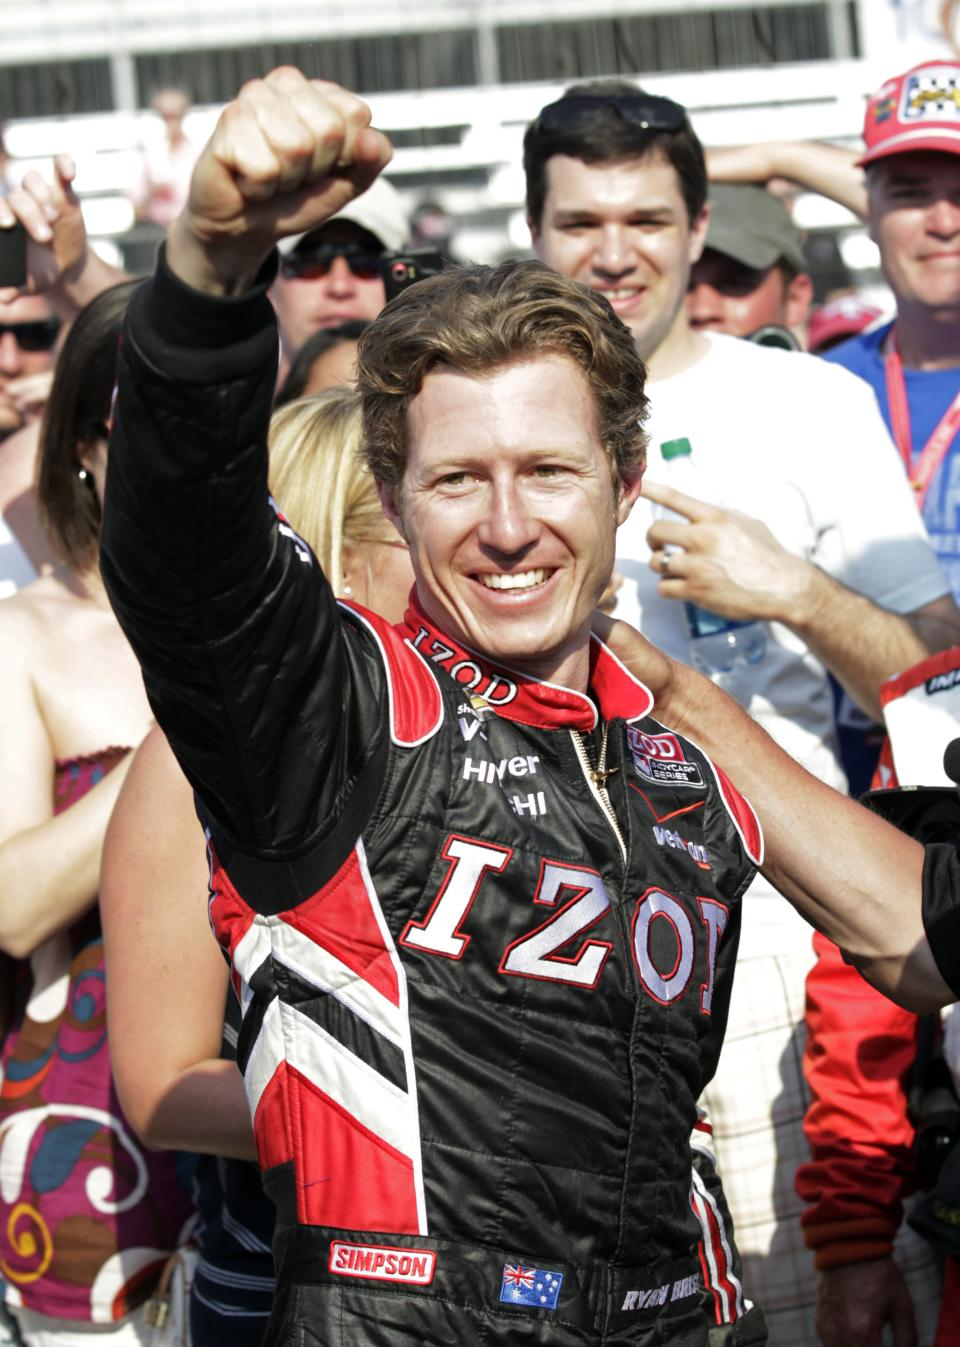 IndyCar driver Ryan Briscoe, of Australia, celebrates after winning the pole on the first day of qualifications for the Indianapolis 500 auto race at the Indianapolis Motor Speedway in Indianapolis, Saturday, May 19, 2012. (AP Photo/AJ Mast)